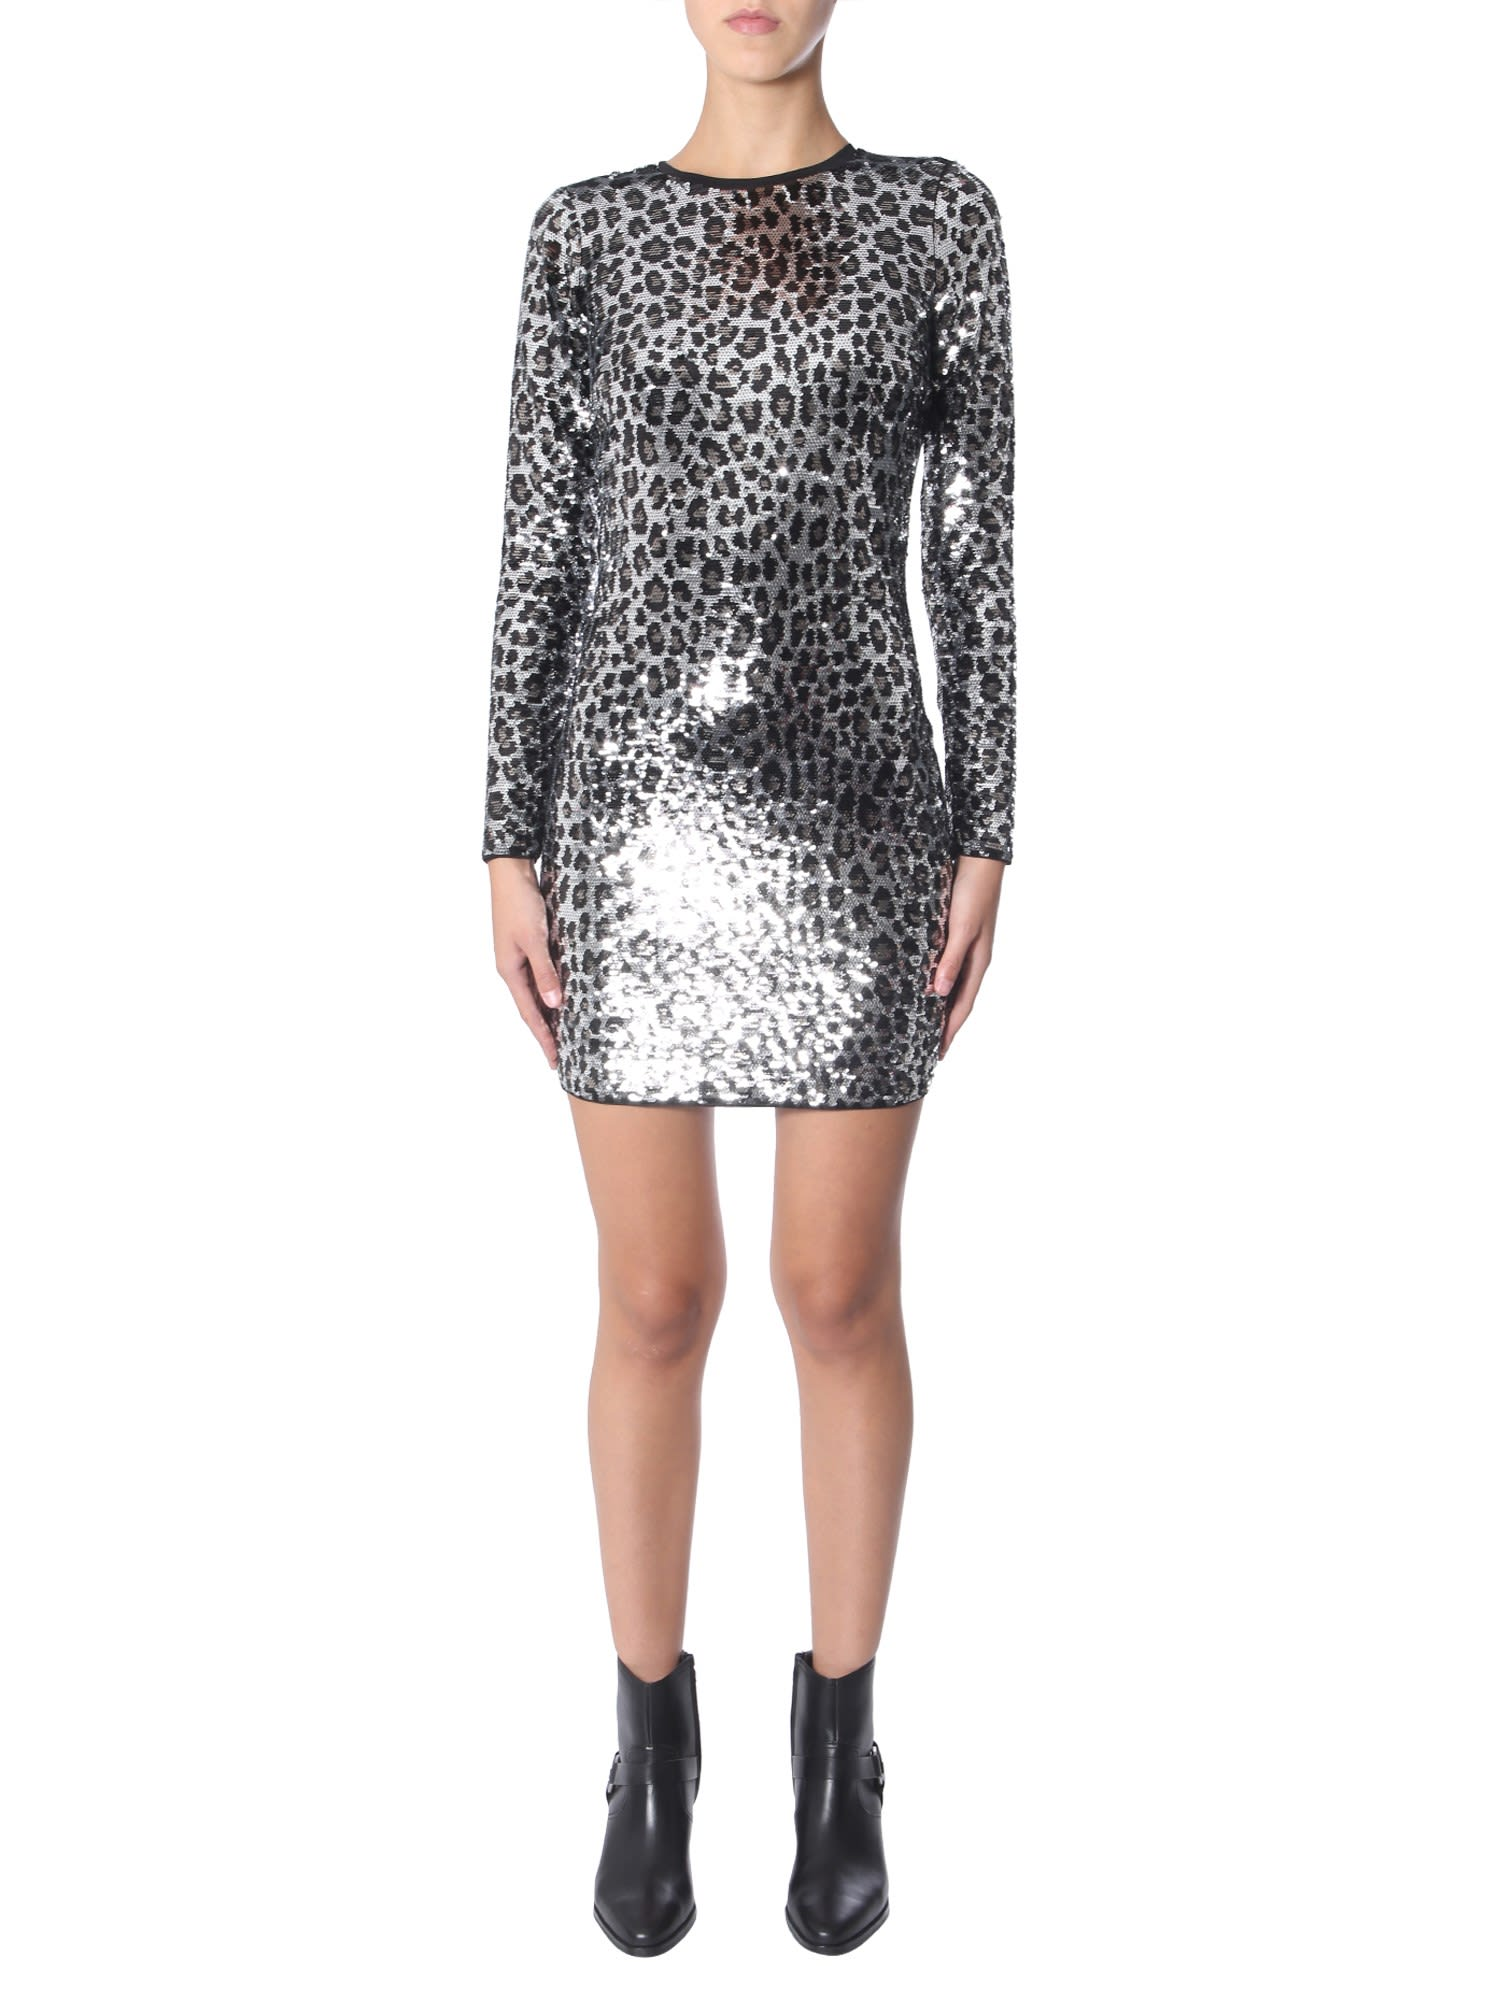 MICHAEL Michael Kors Leopard Dress